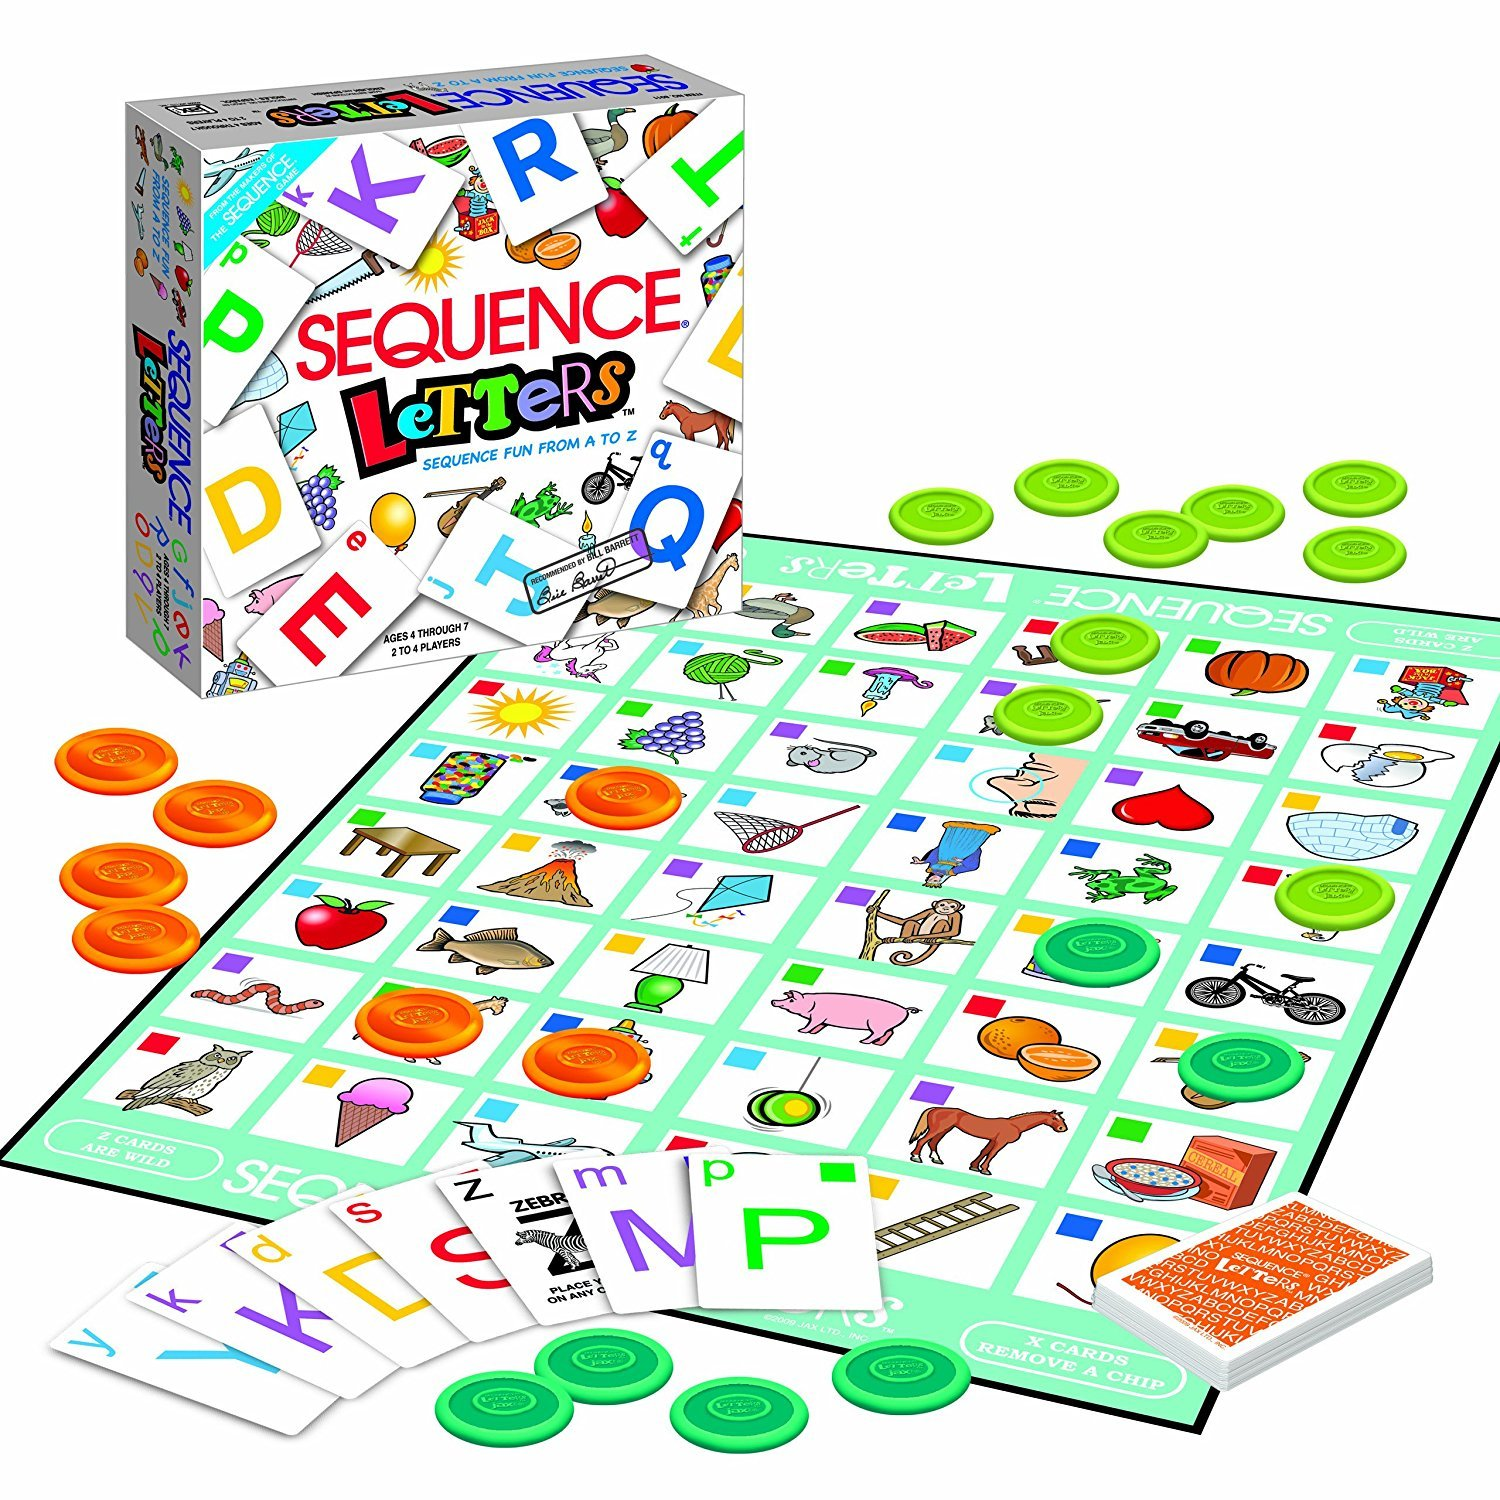 Amazon.com: Jax Sequence Letters: Toys & Games